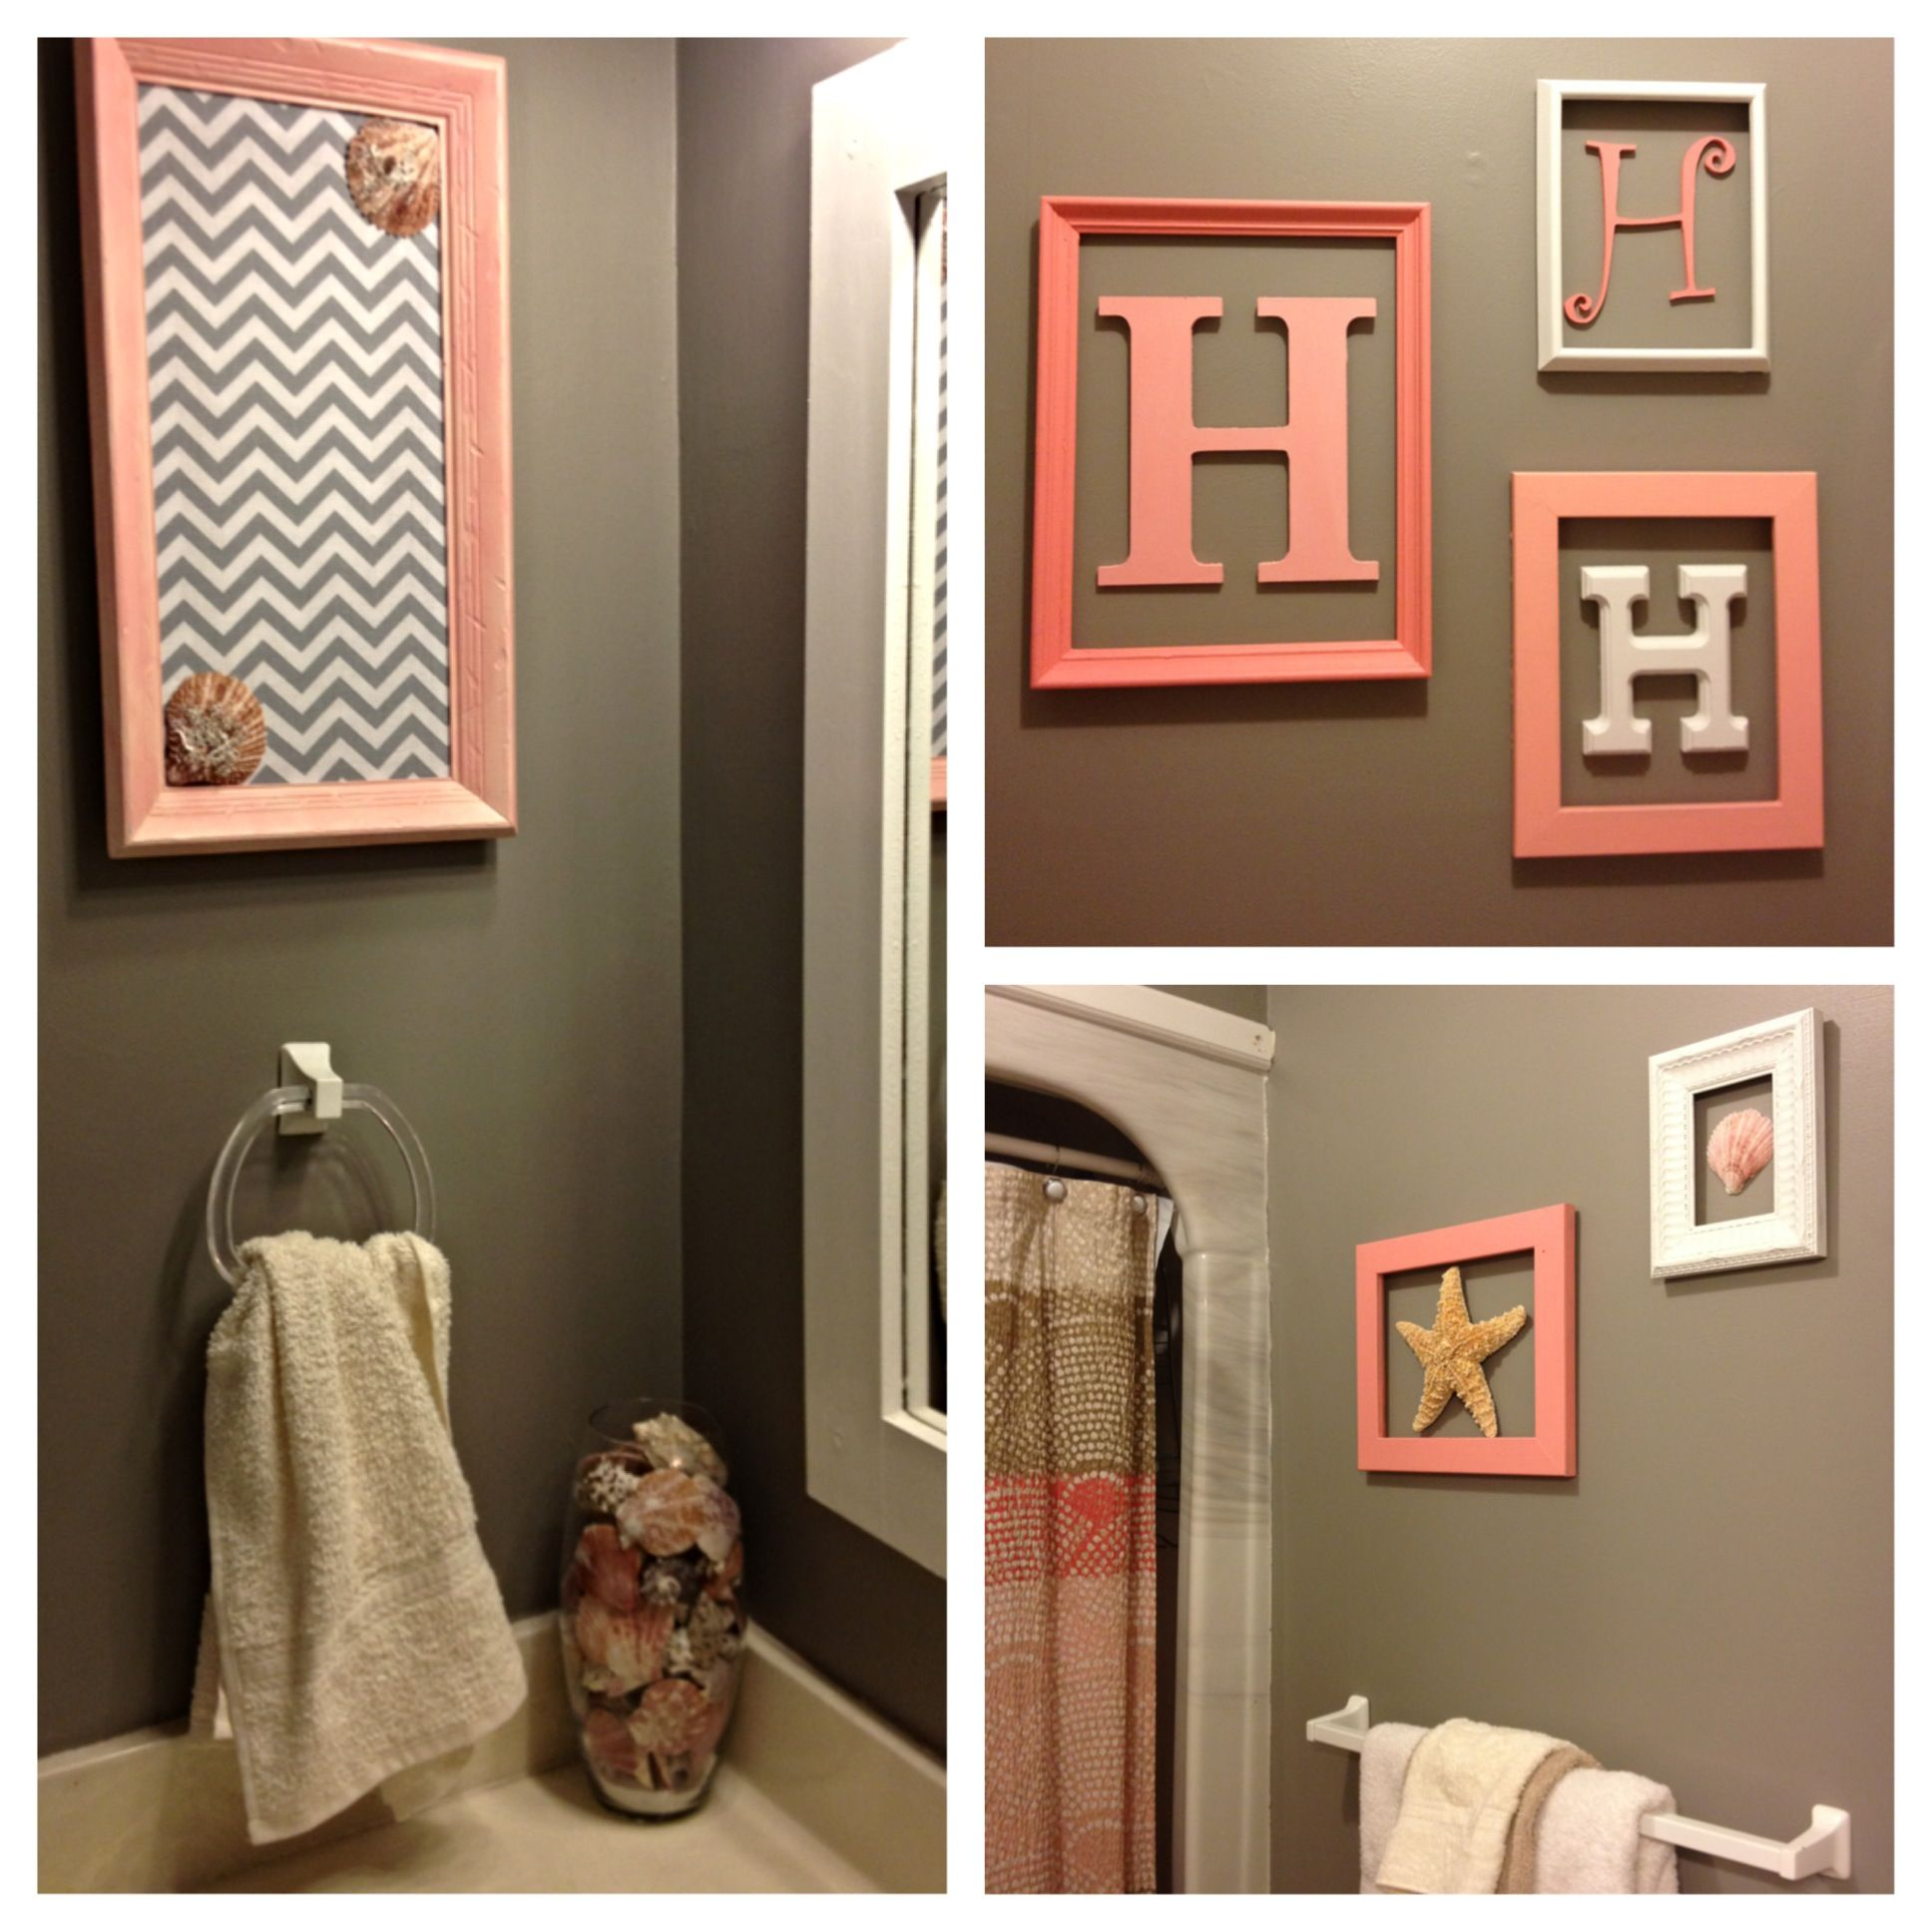 Our new beachy bathroom monogram wall pink tan grey for Pink and gray bathroom sets